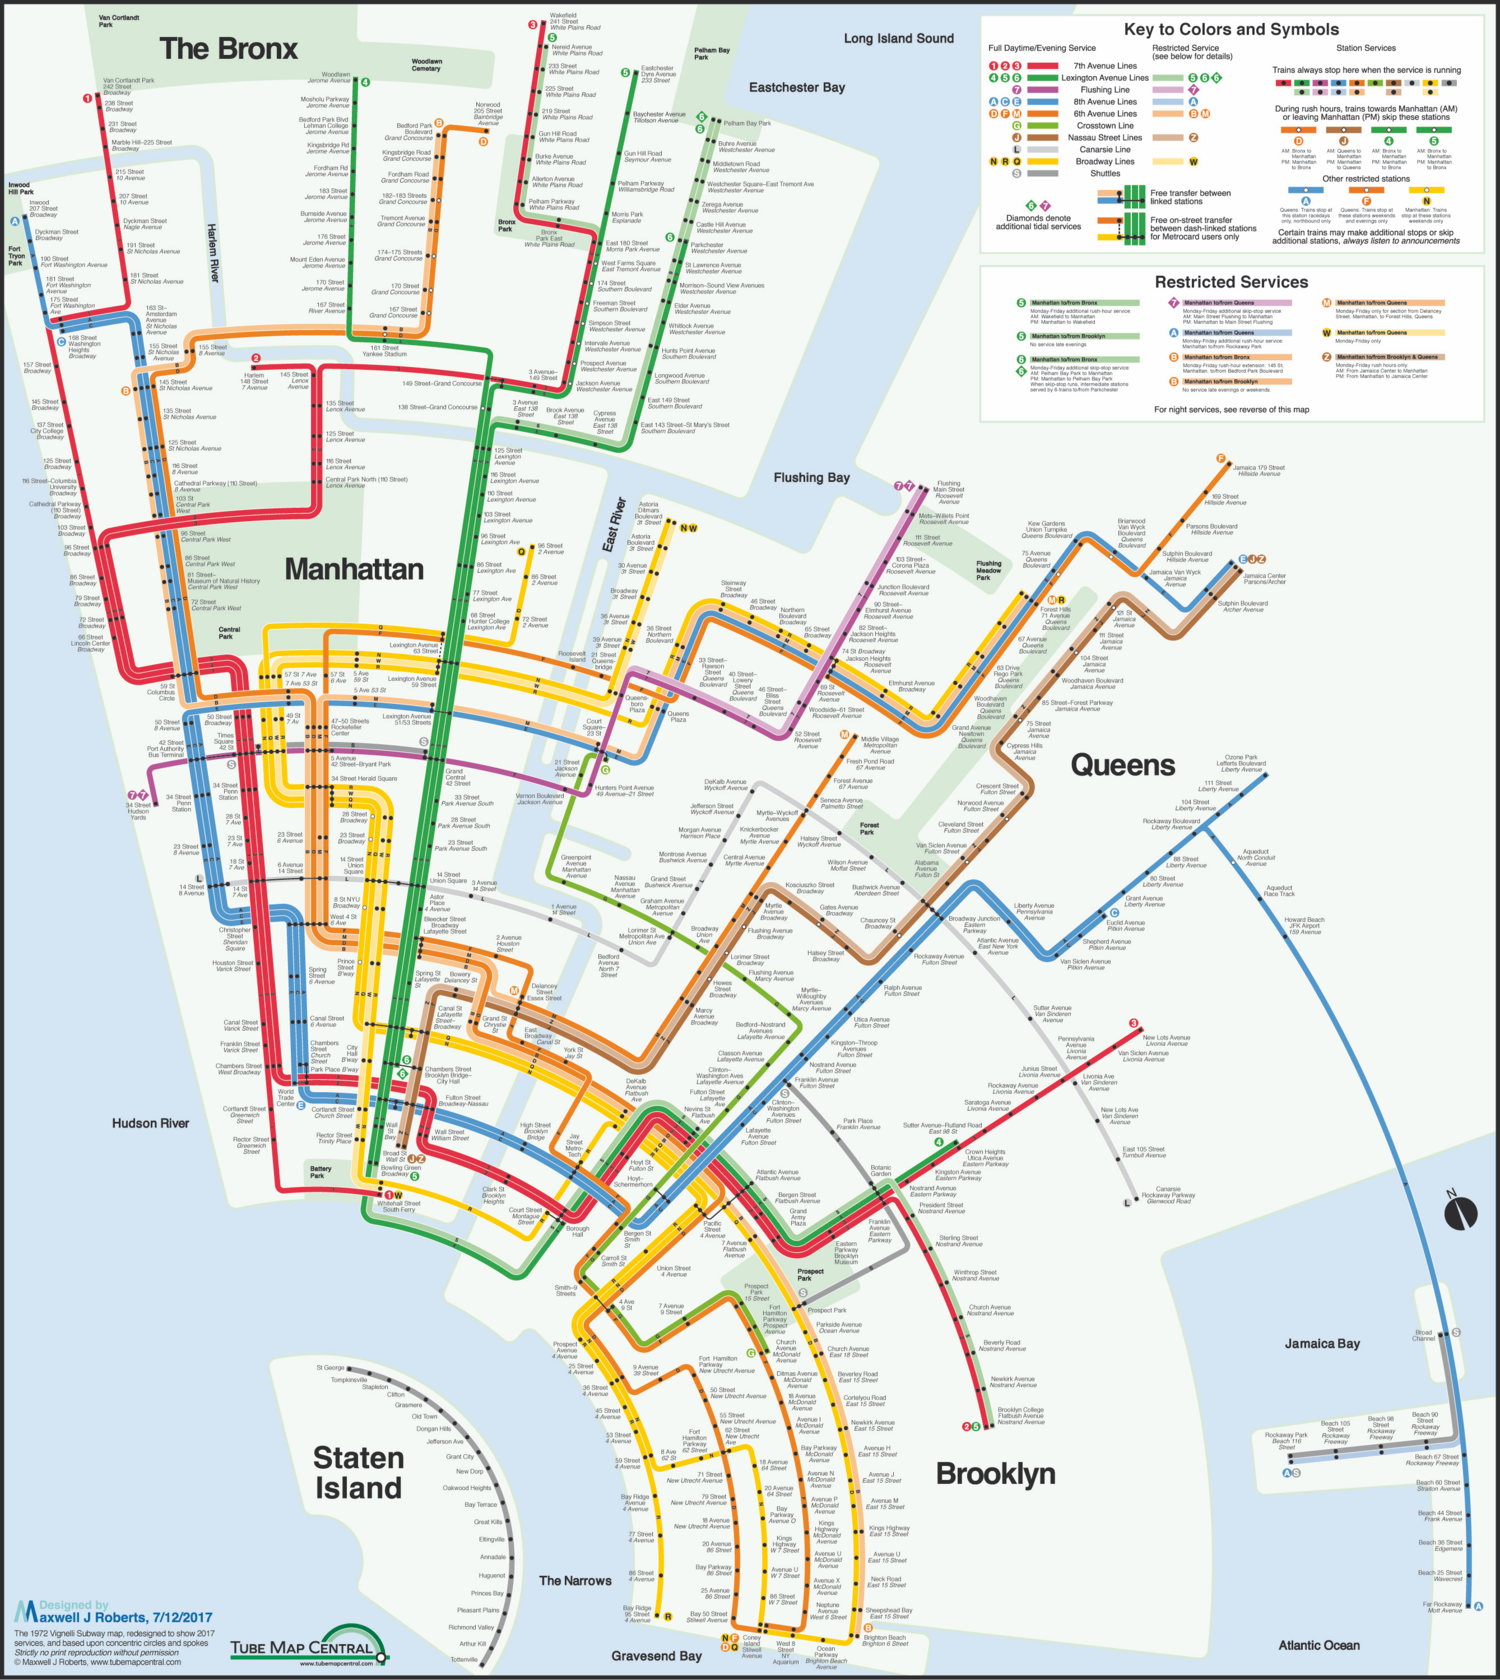 Check Out This VignelliInspired New York City Subway Map Made Of - New york subway map with streets